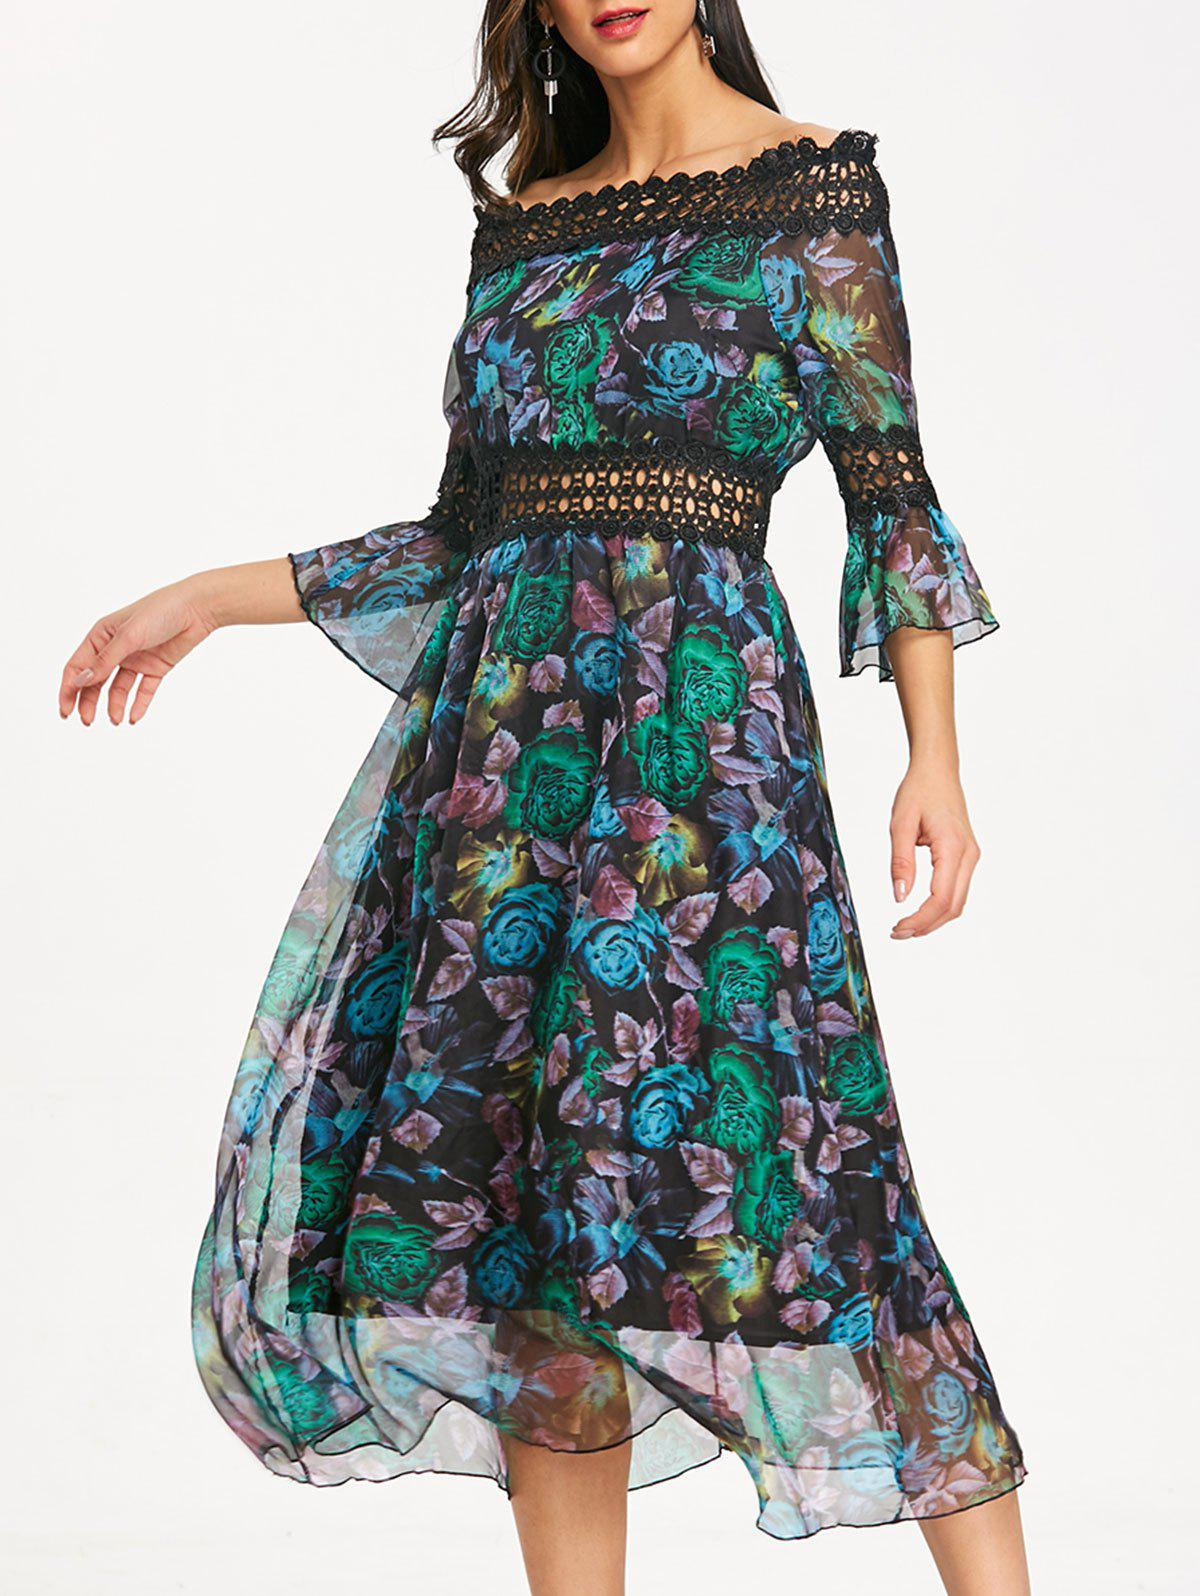 Peacock Feather Print Off Shoulder Chiffon Dress - GREEN XL